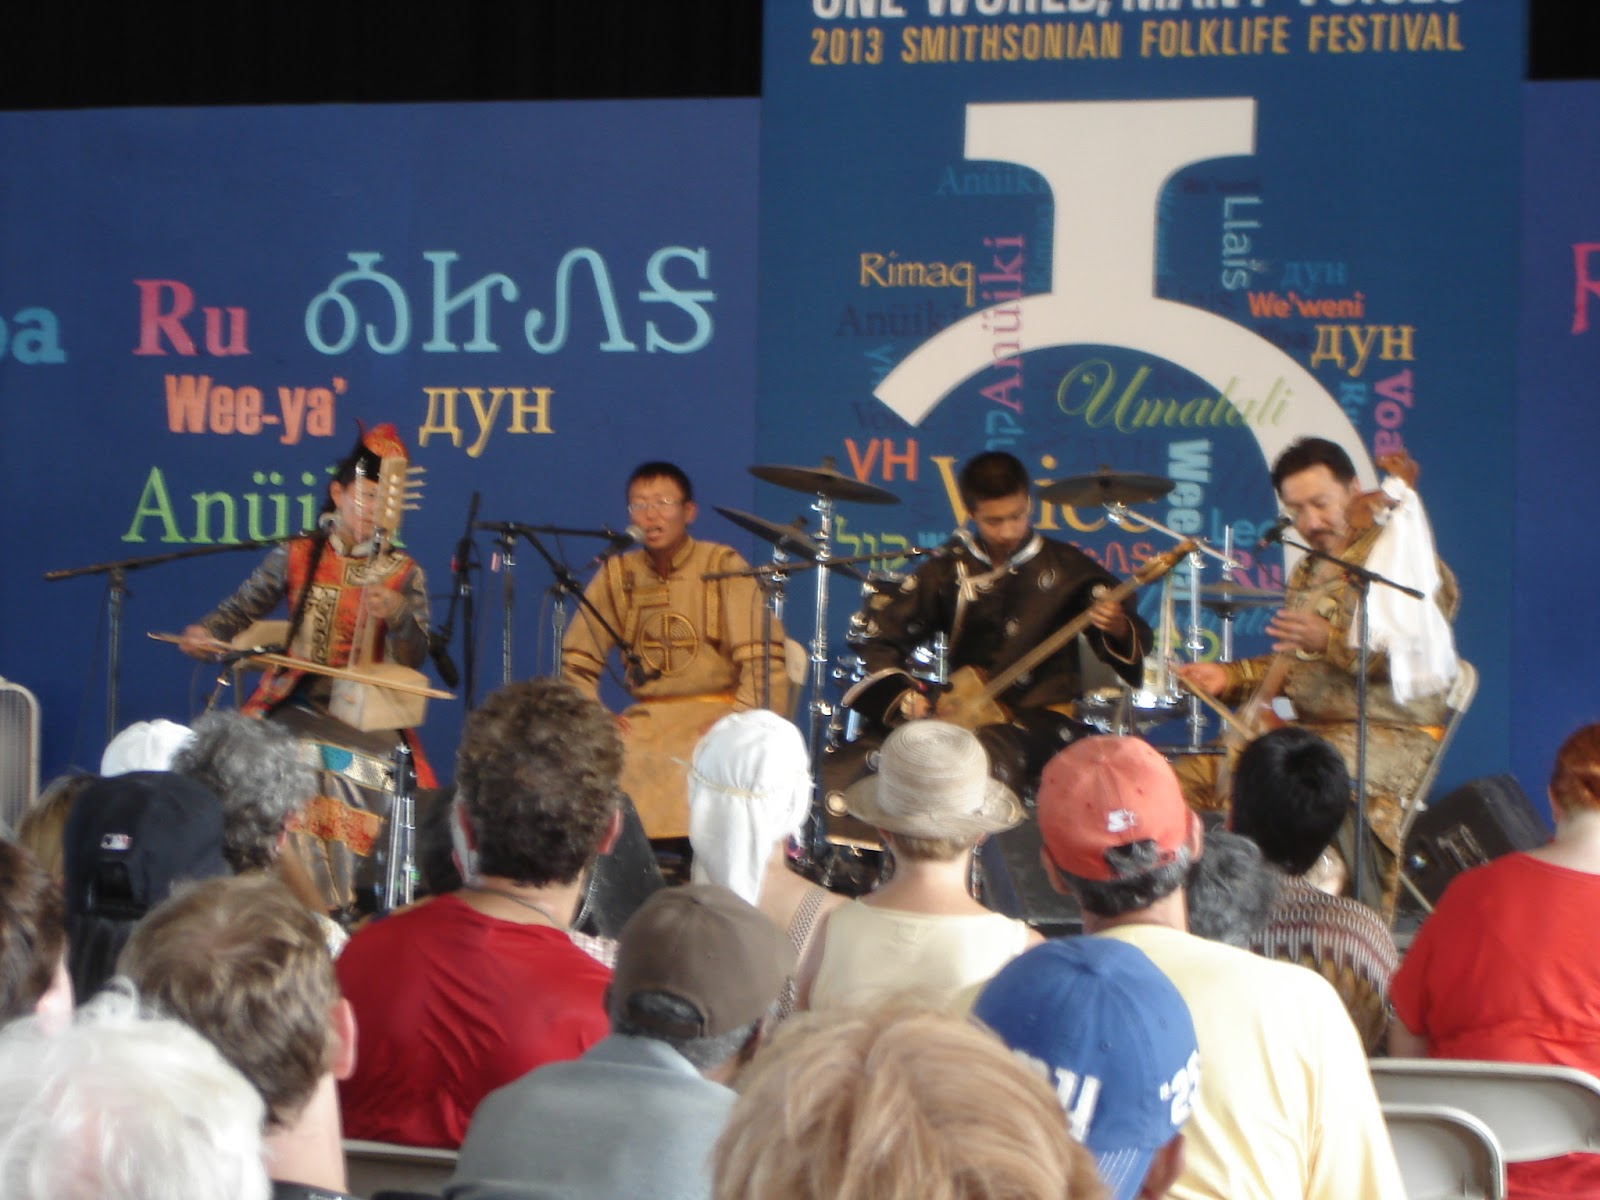 Alash, a Tuvan folk music ensemble, playing the song Bai Taiga